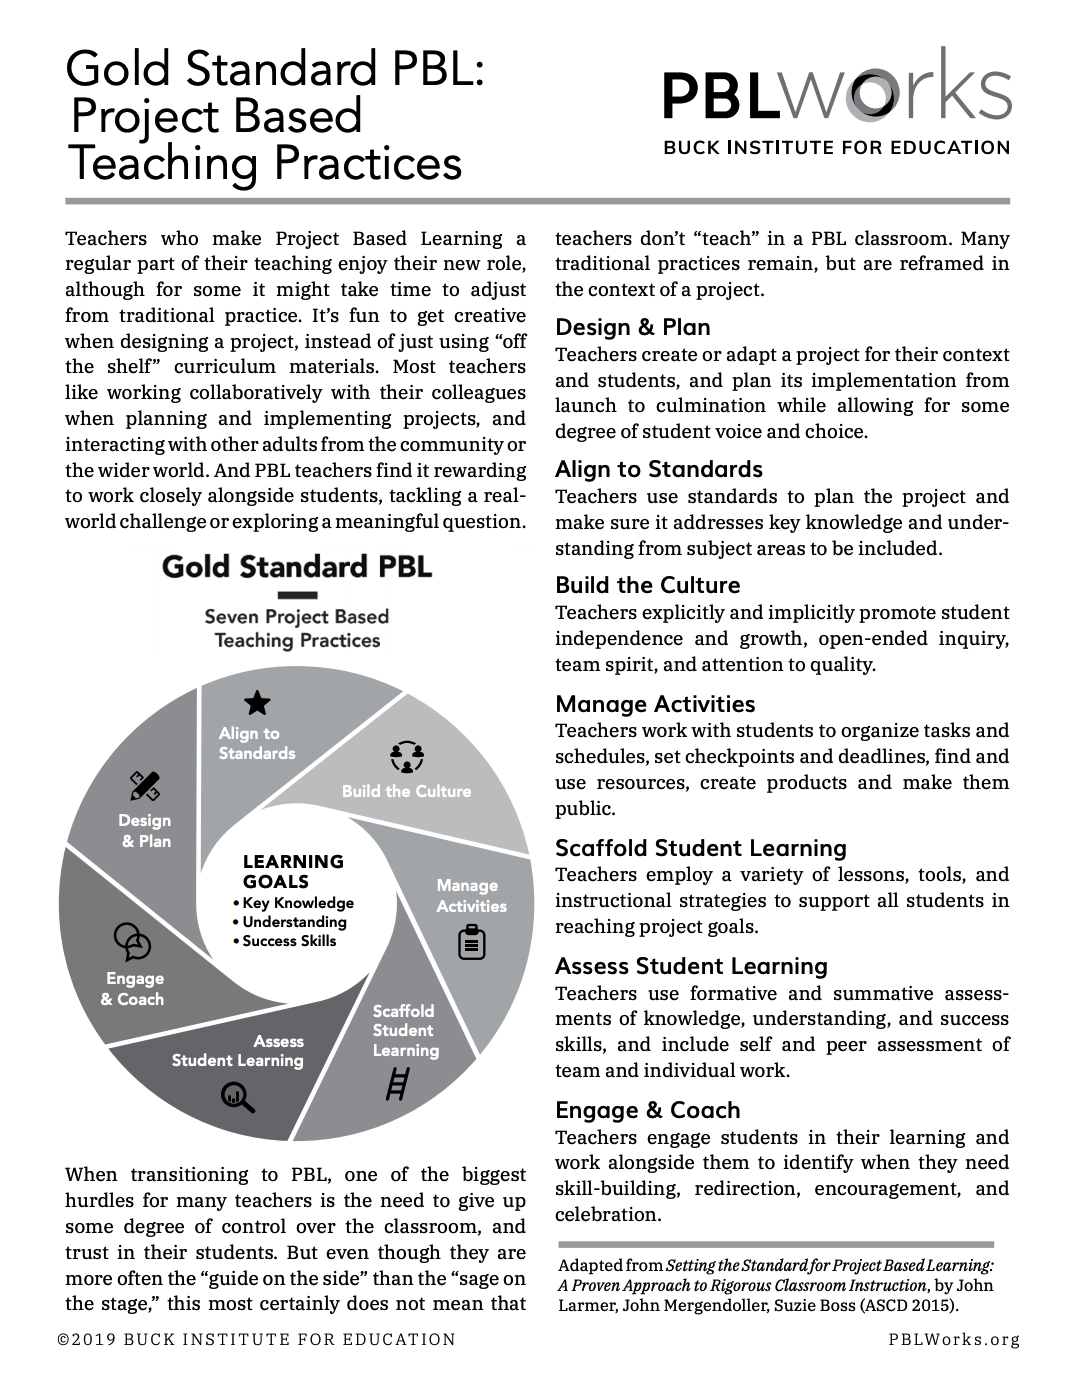 Gold Standard PBL Project Based Teaching Practices